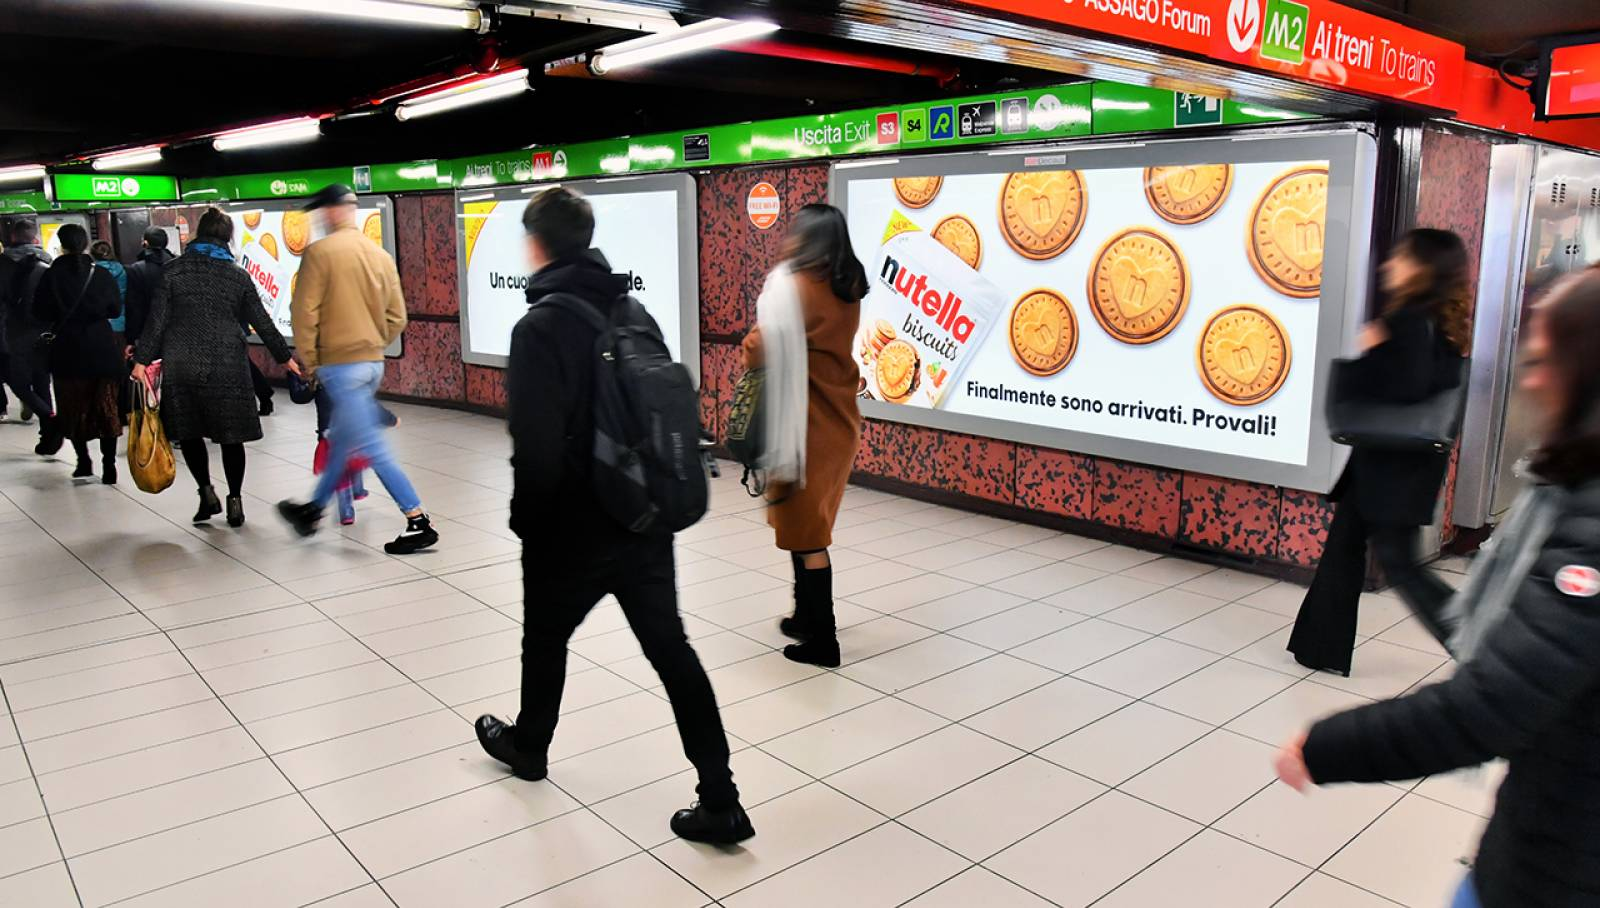 Underground OOH advertising in Milan Station Domination IGPDecaux for Ferrero Nutella Biscuits